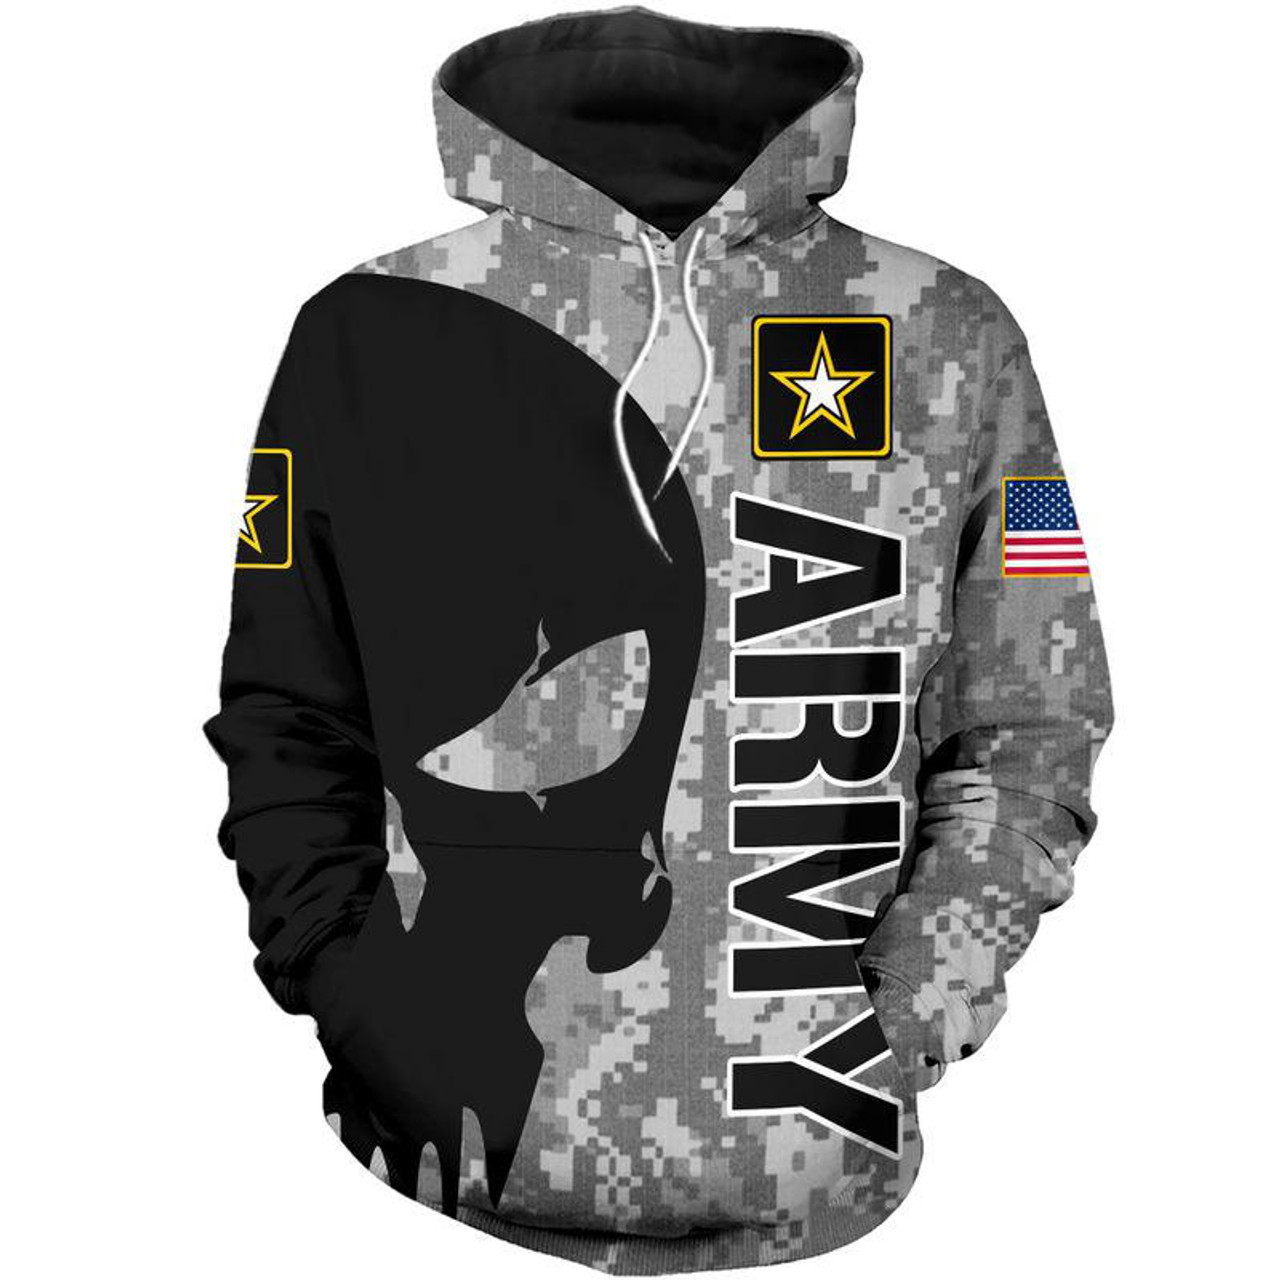 Motorcycle Zip Up Hoodie Military Camo Special Ops Digital Skull